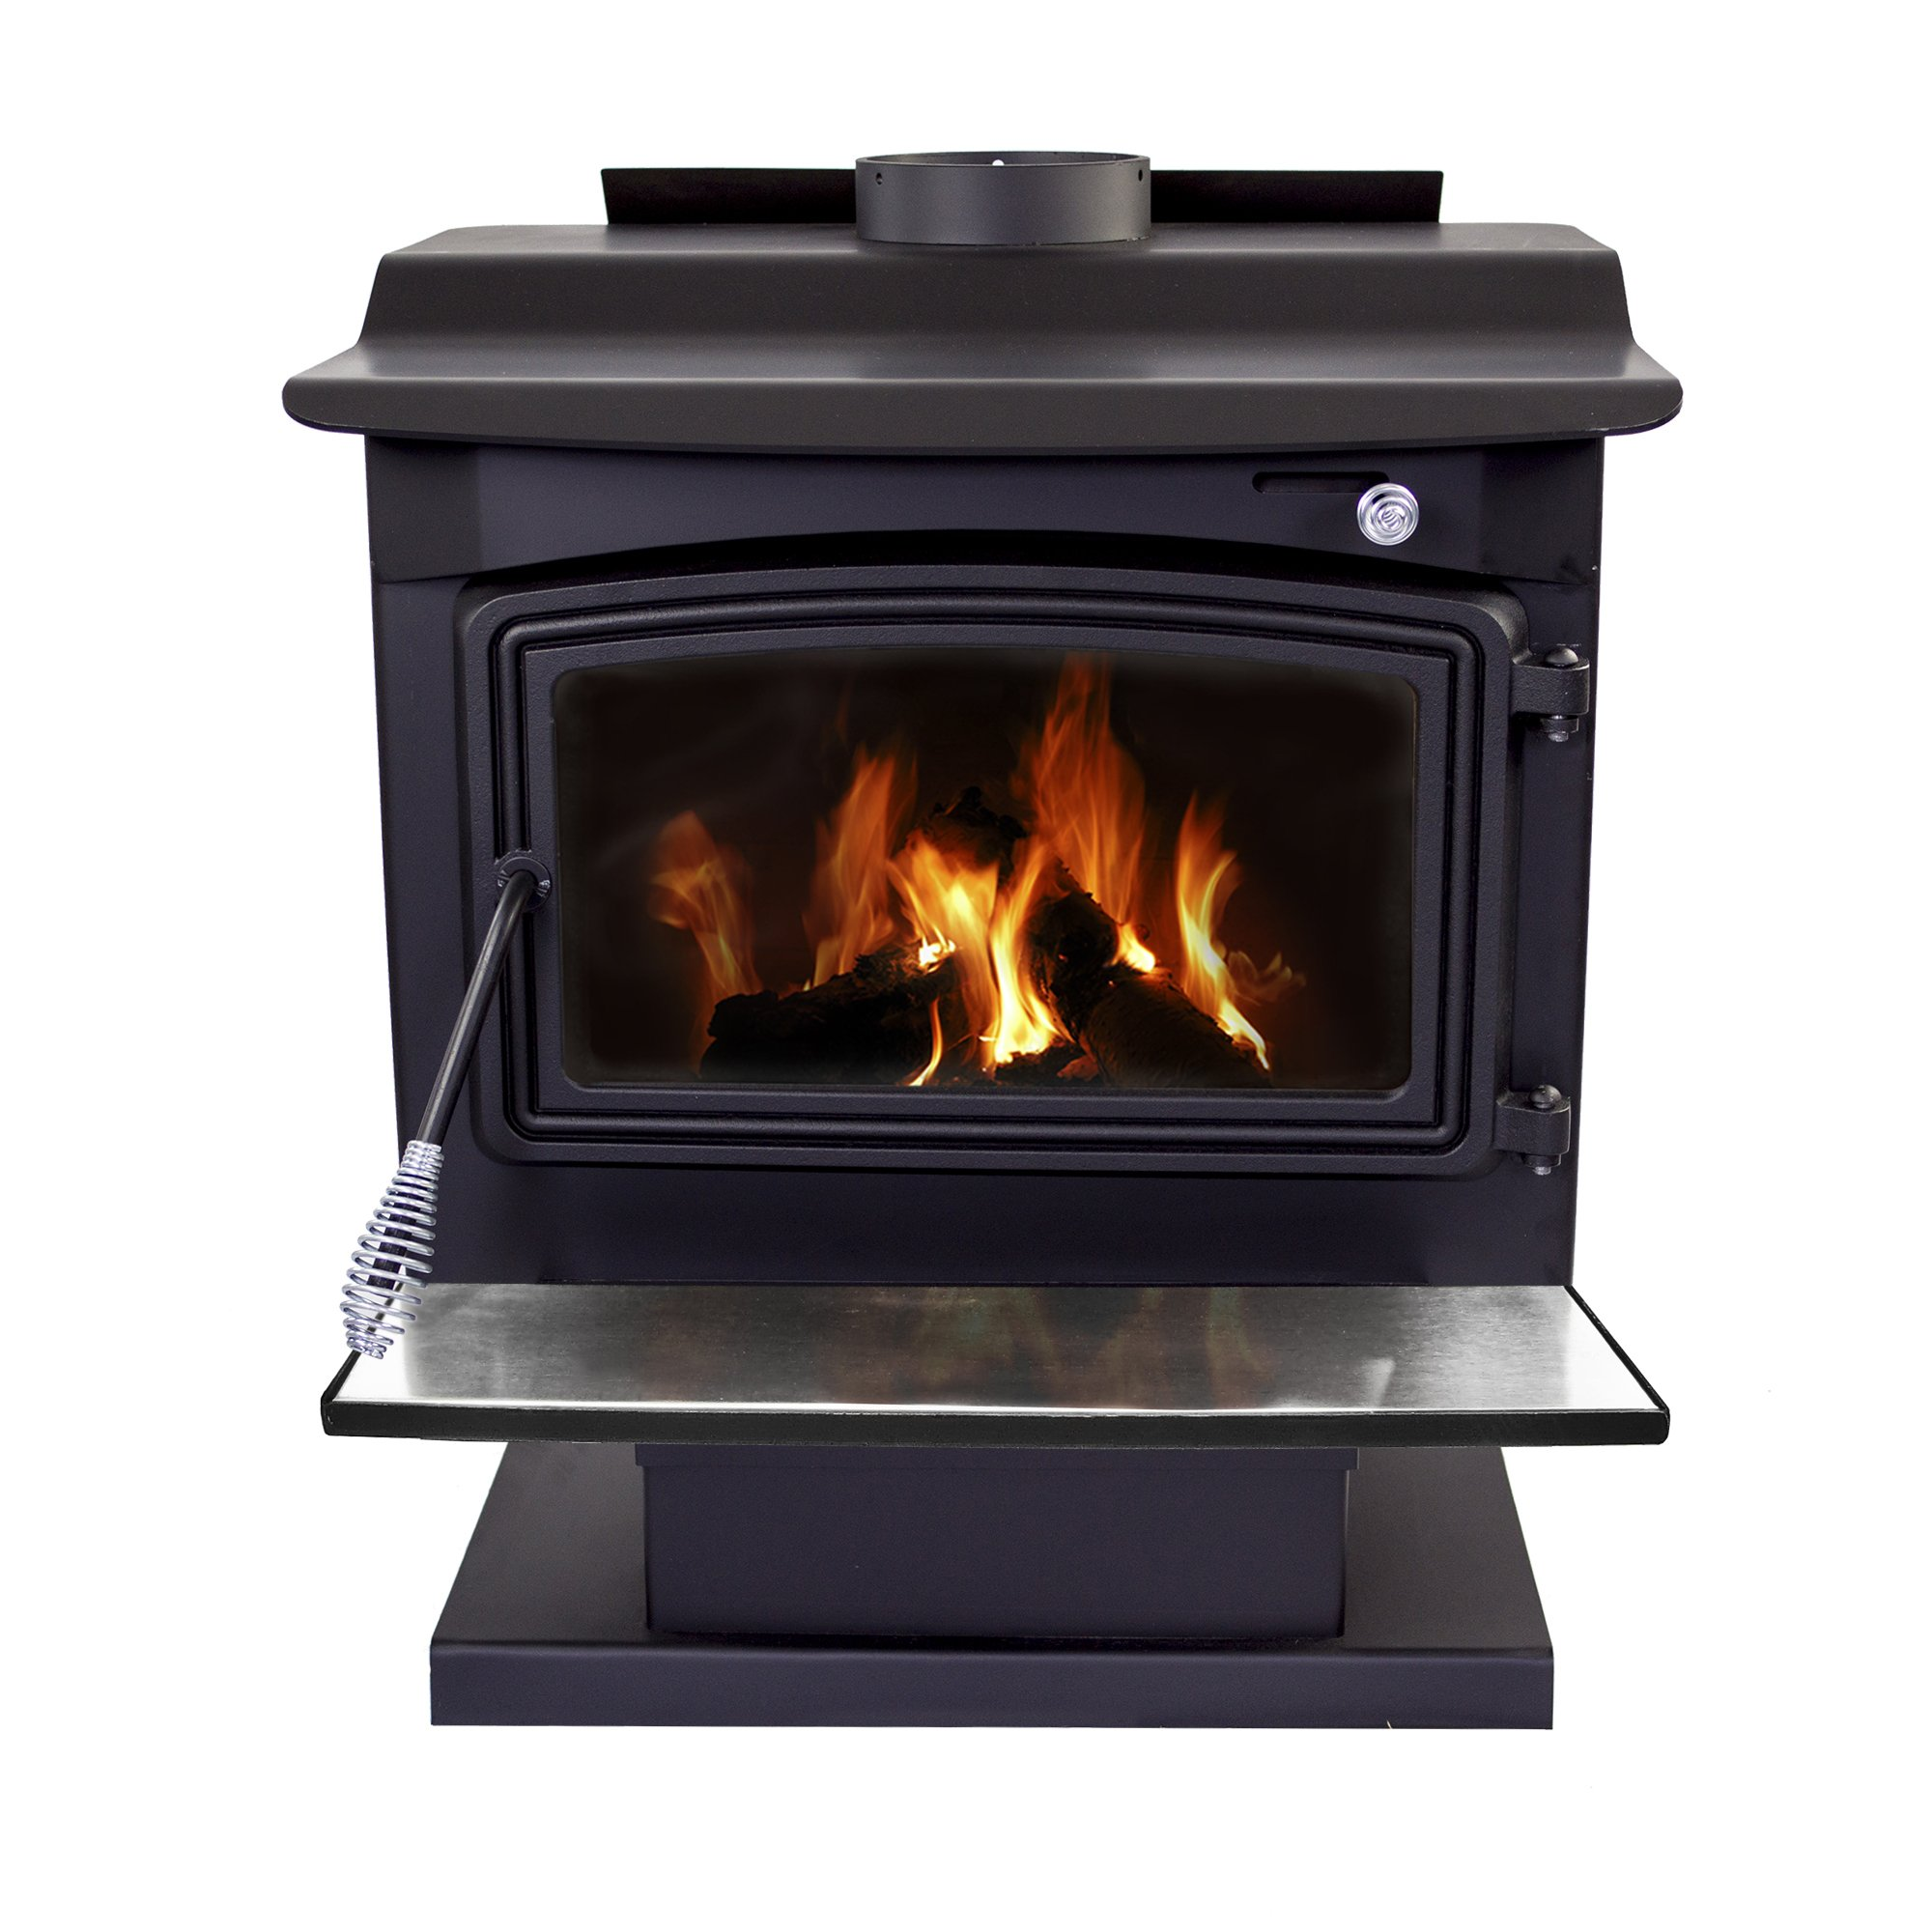 Pleasant Hearth 2,200 Sq. Ft. Large Wood Burning Stove by Pleasant Hearth